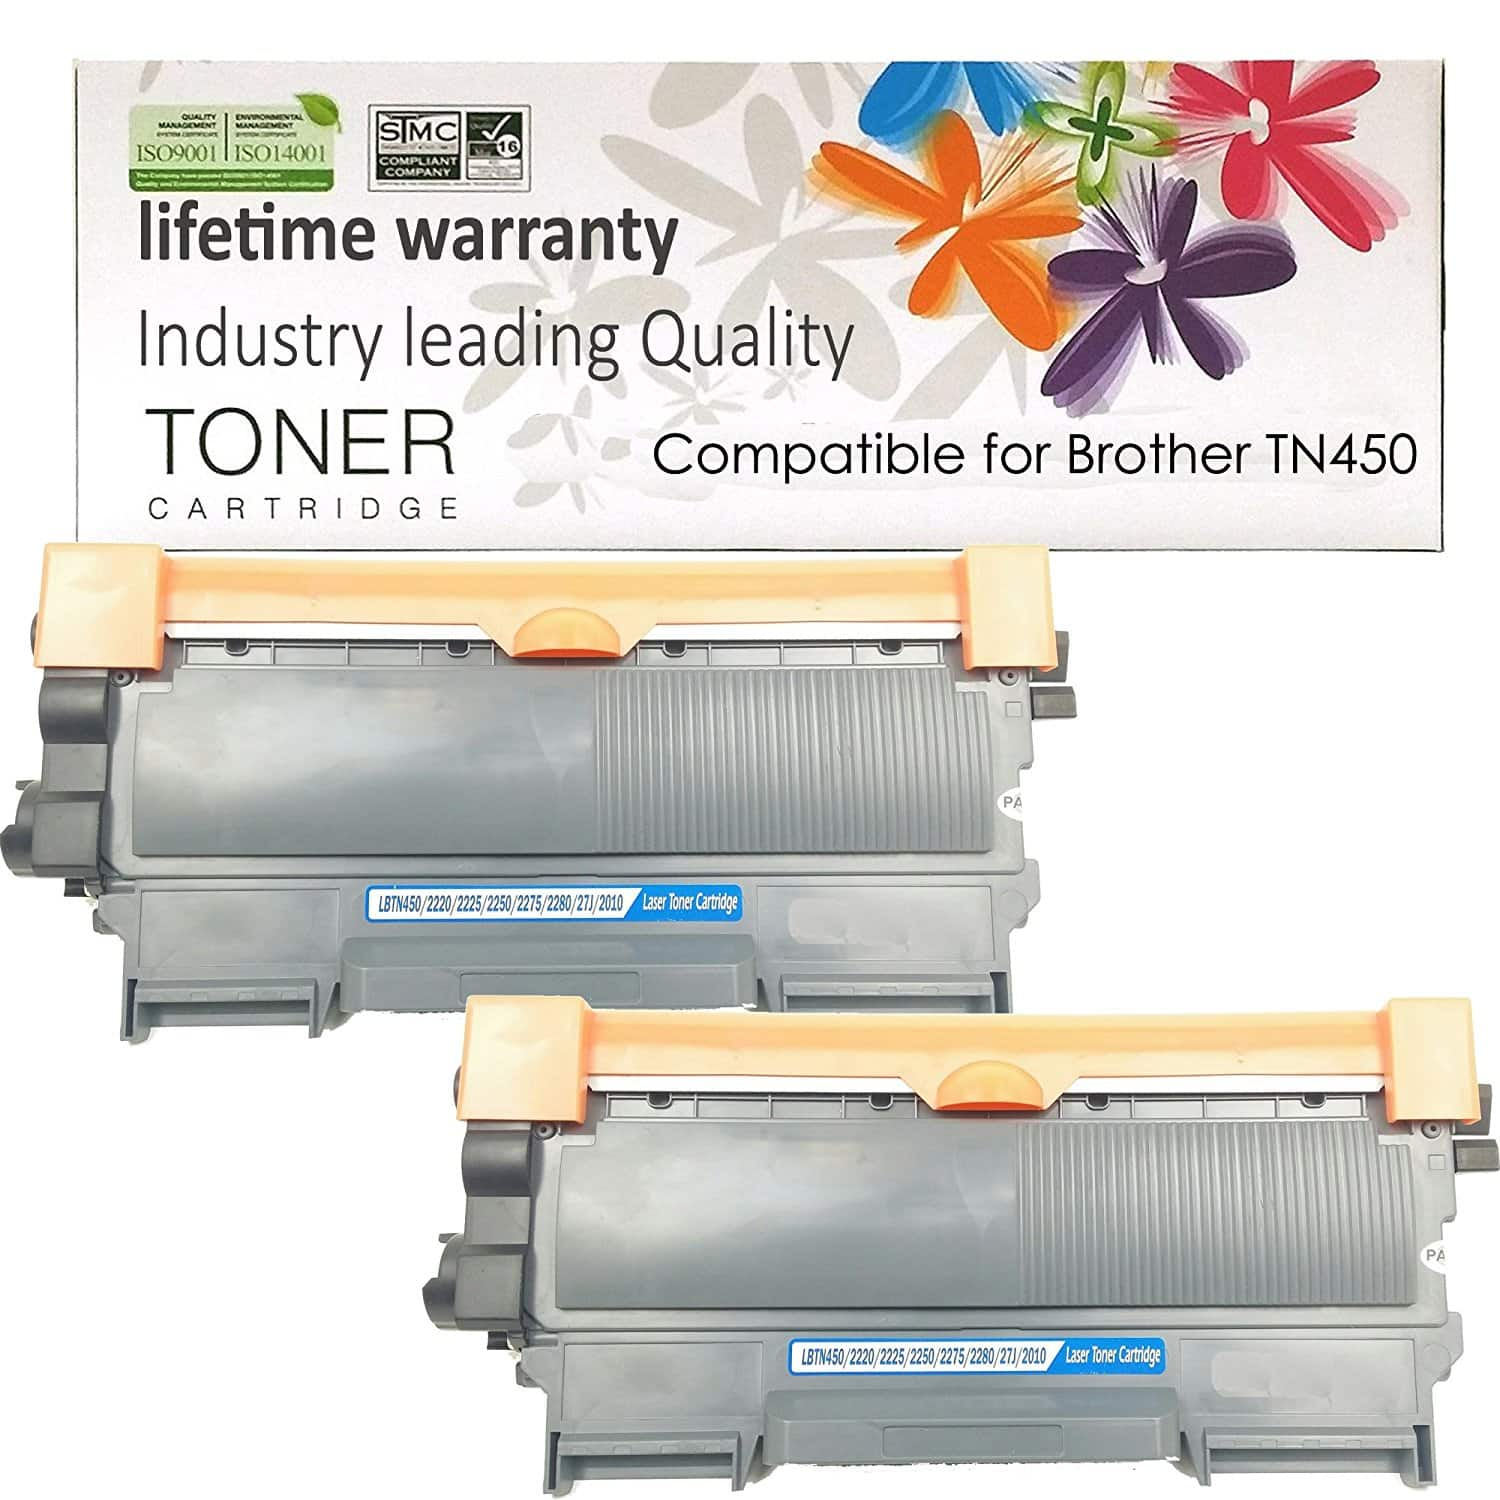 Shop At 247 Compatible Toner Cartridge Replacement for Brother TN450 (2-Pack) $11.99